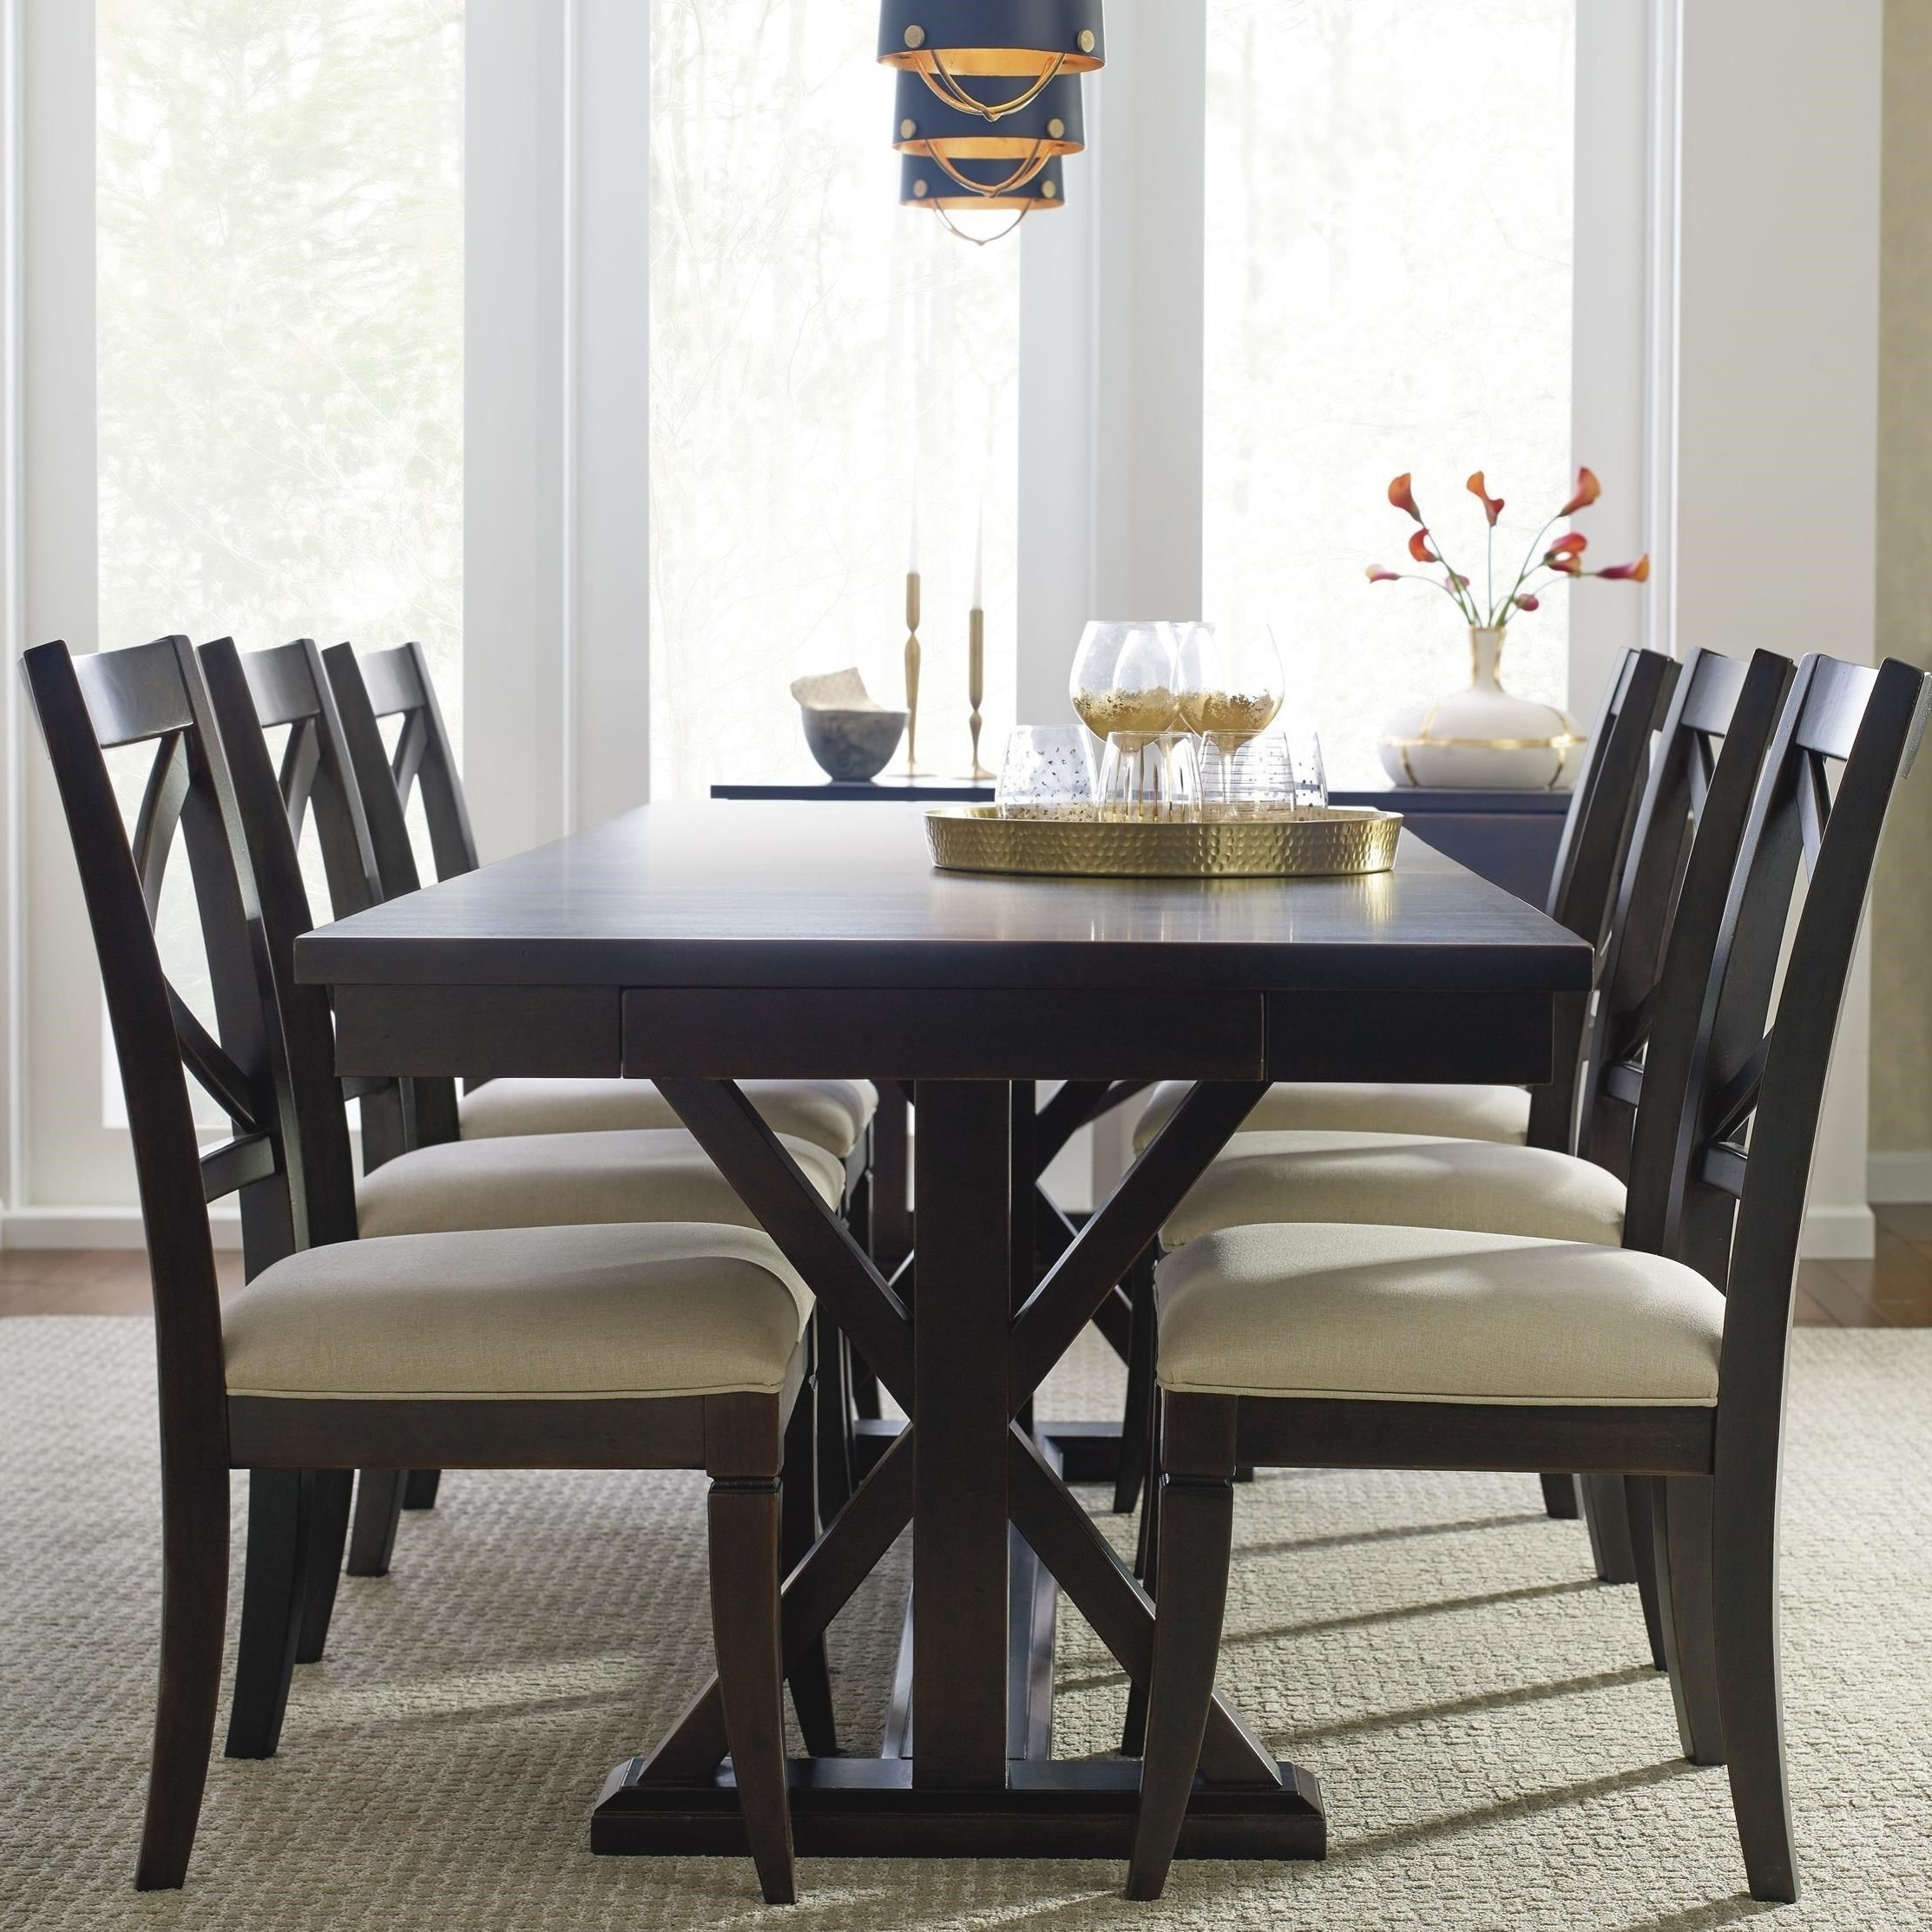 Jaxon 7 Piece Rectangle Dining Sets With Upholstered Chairs Within Trendy Remarkable Dining Room Sets With Upholstered Chairs At Modus (Gallery 18 of 25)